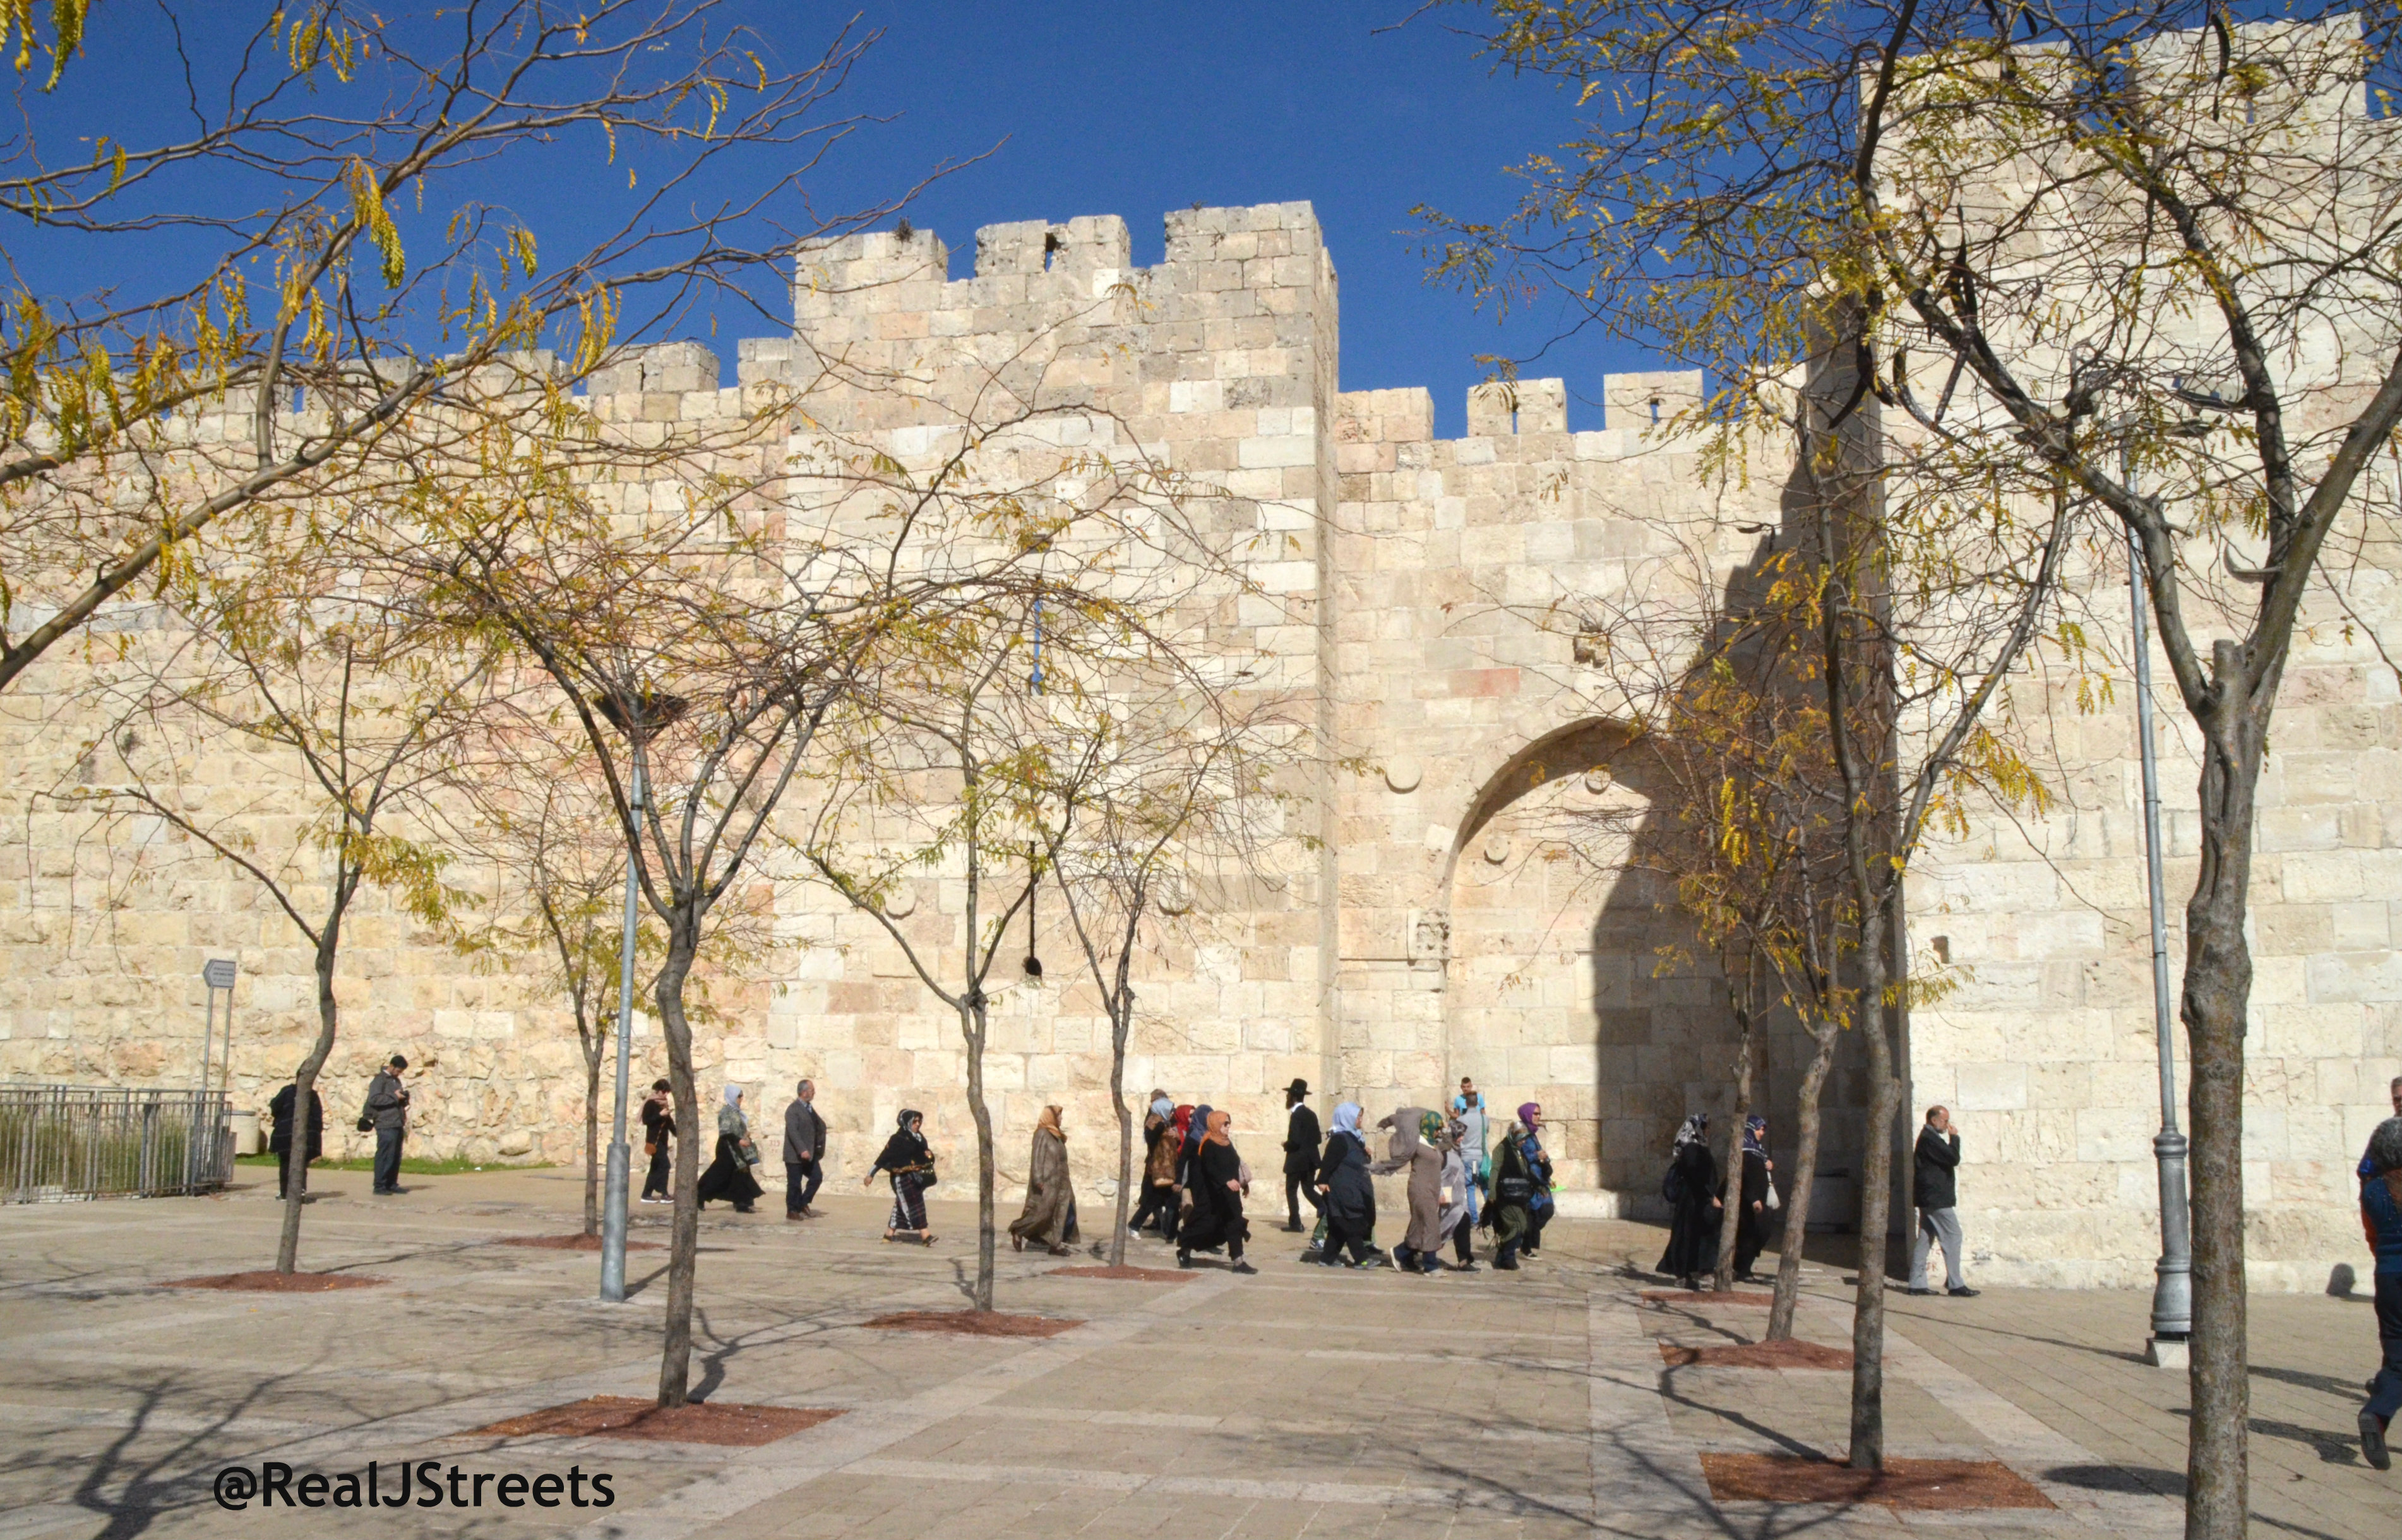 image people walking to old city by Jaffa gate